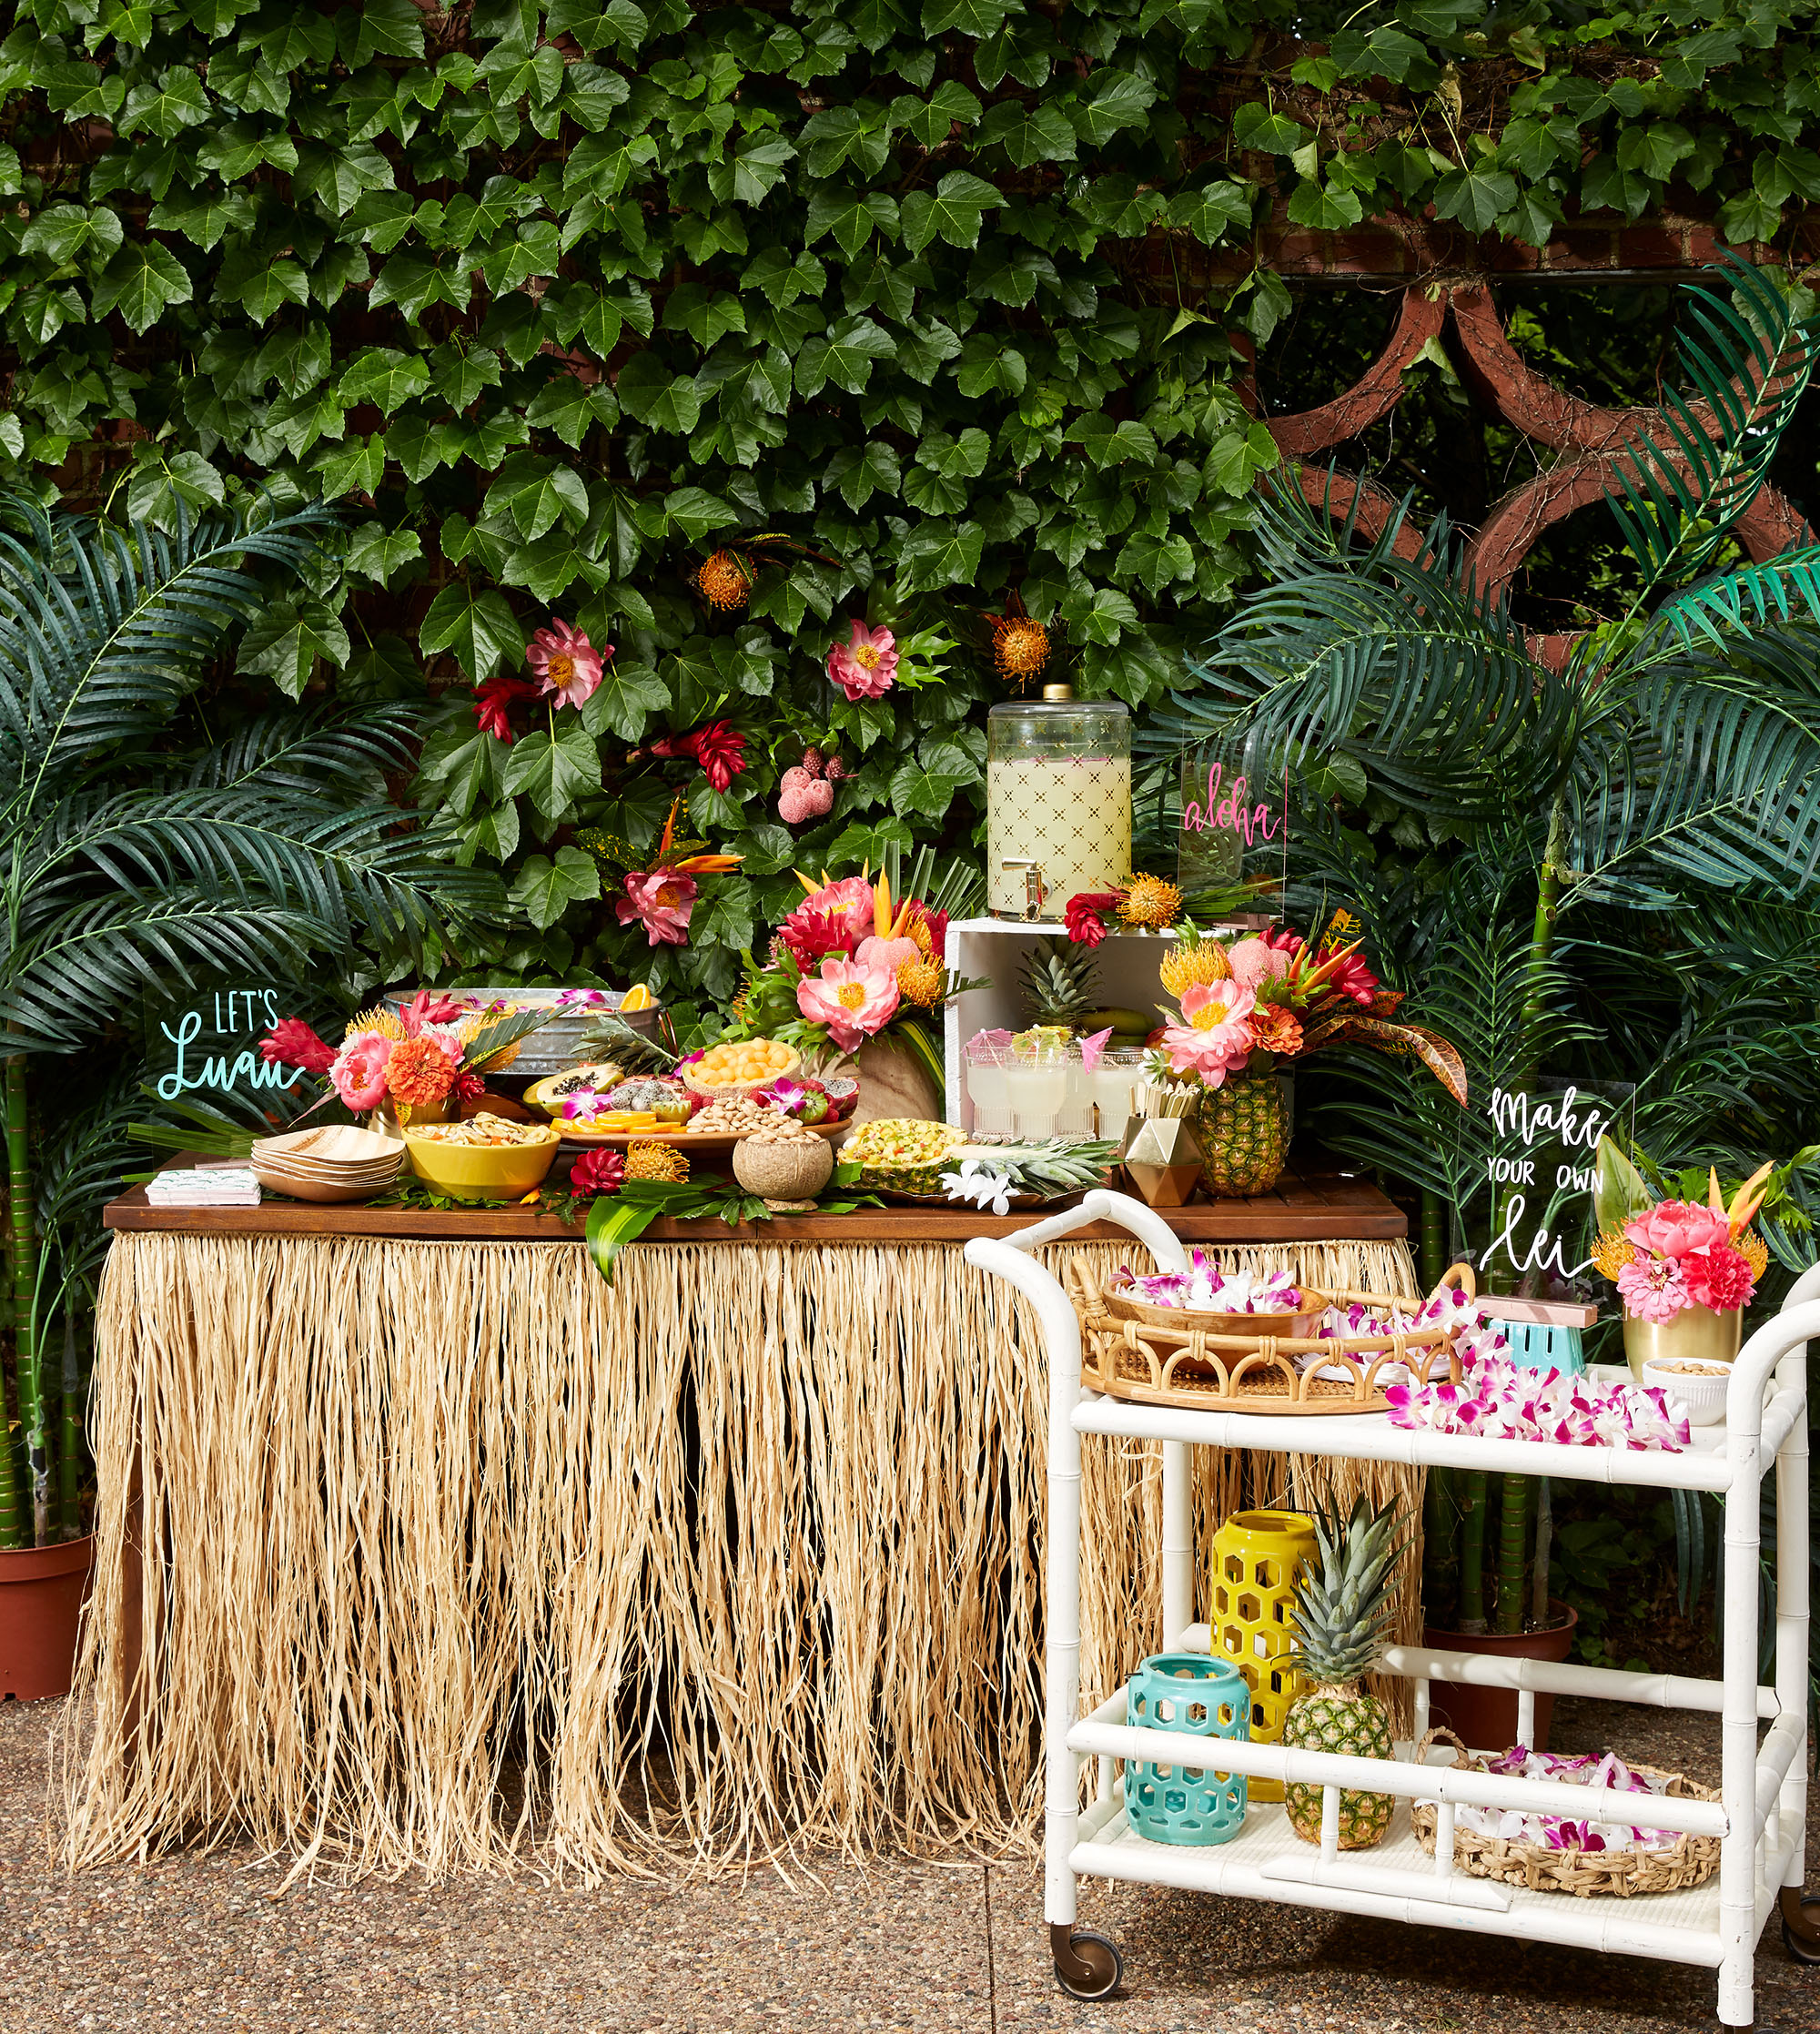 food table with grass skirt white cart